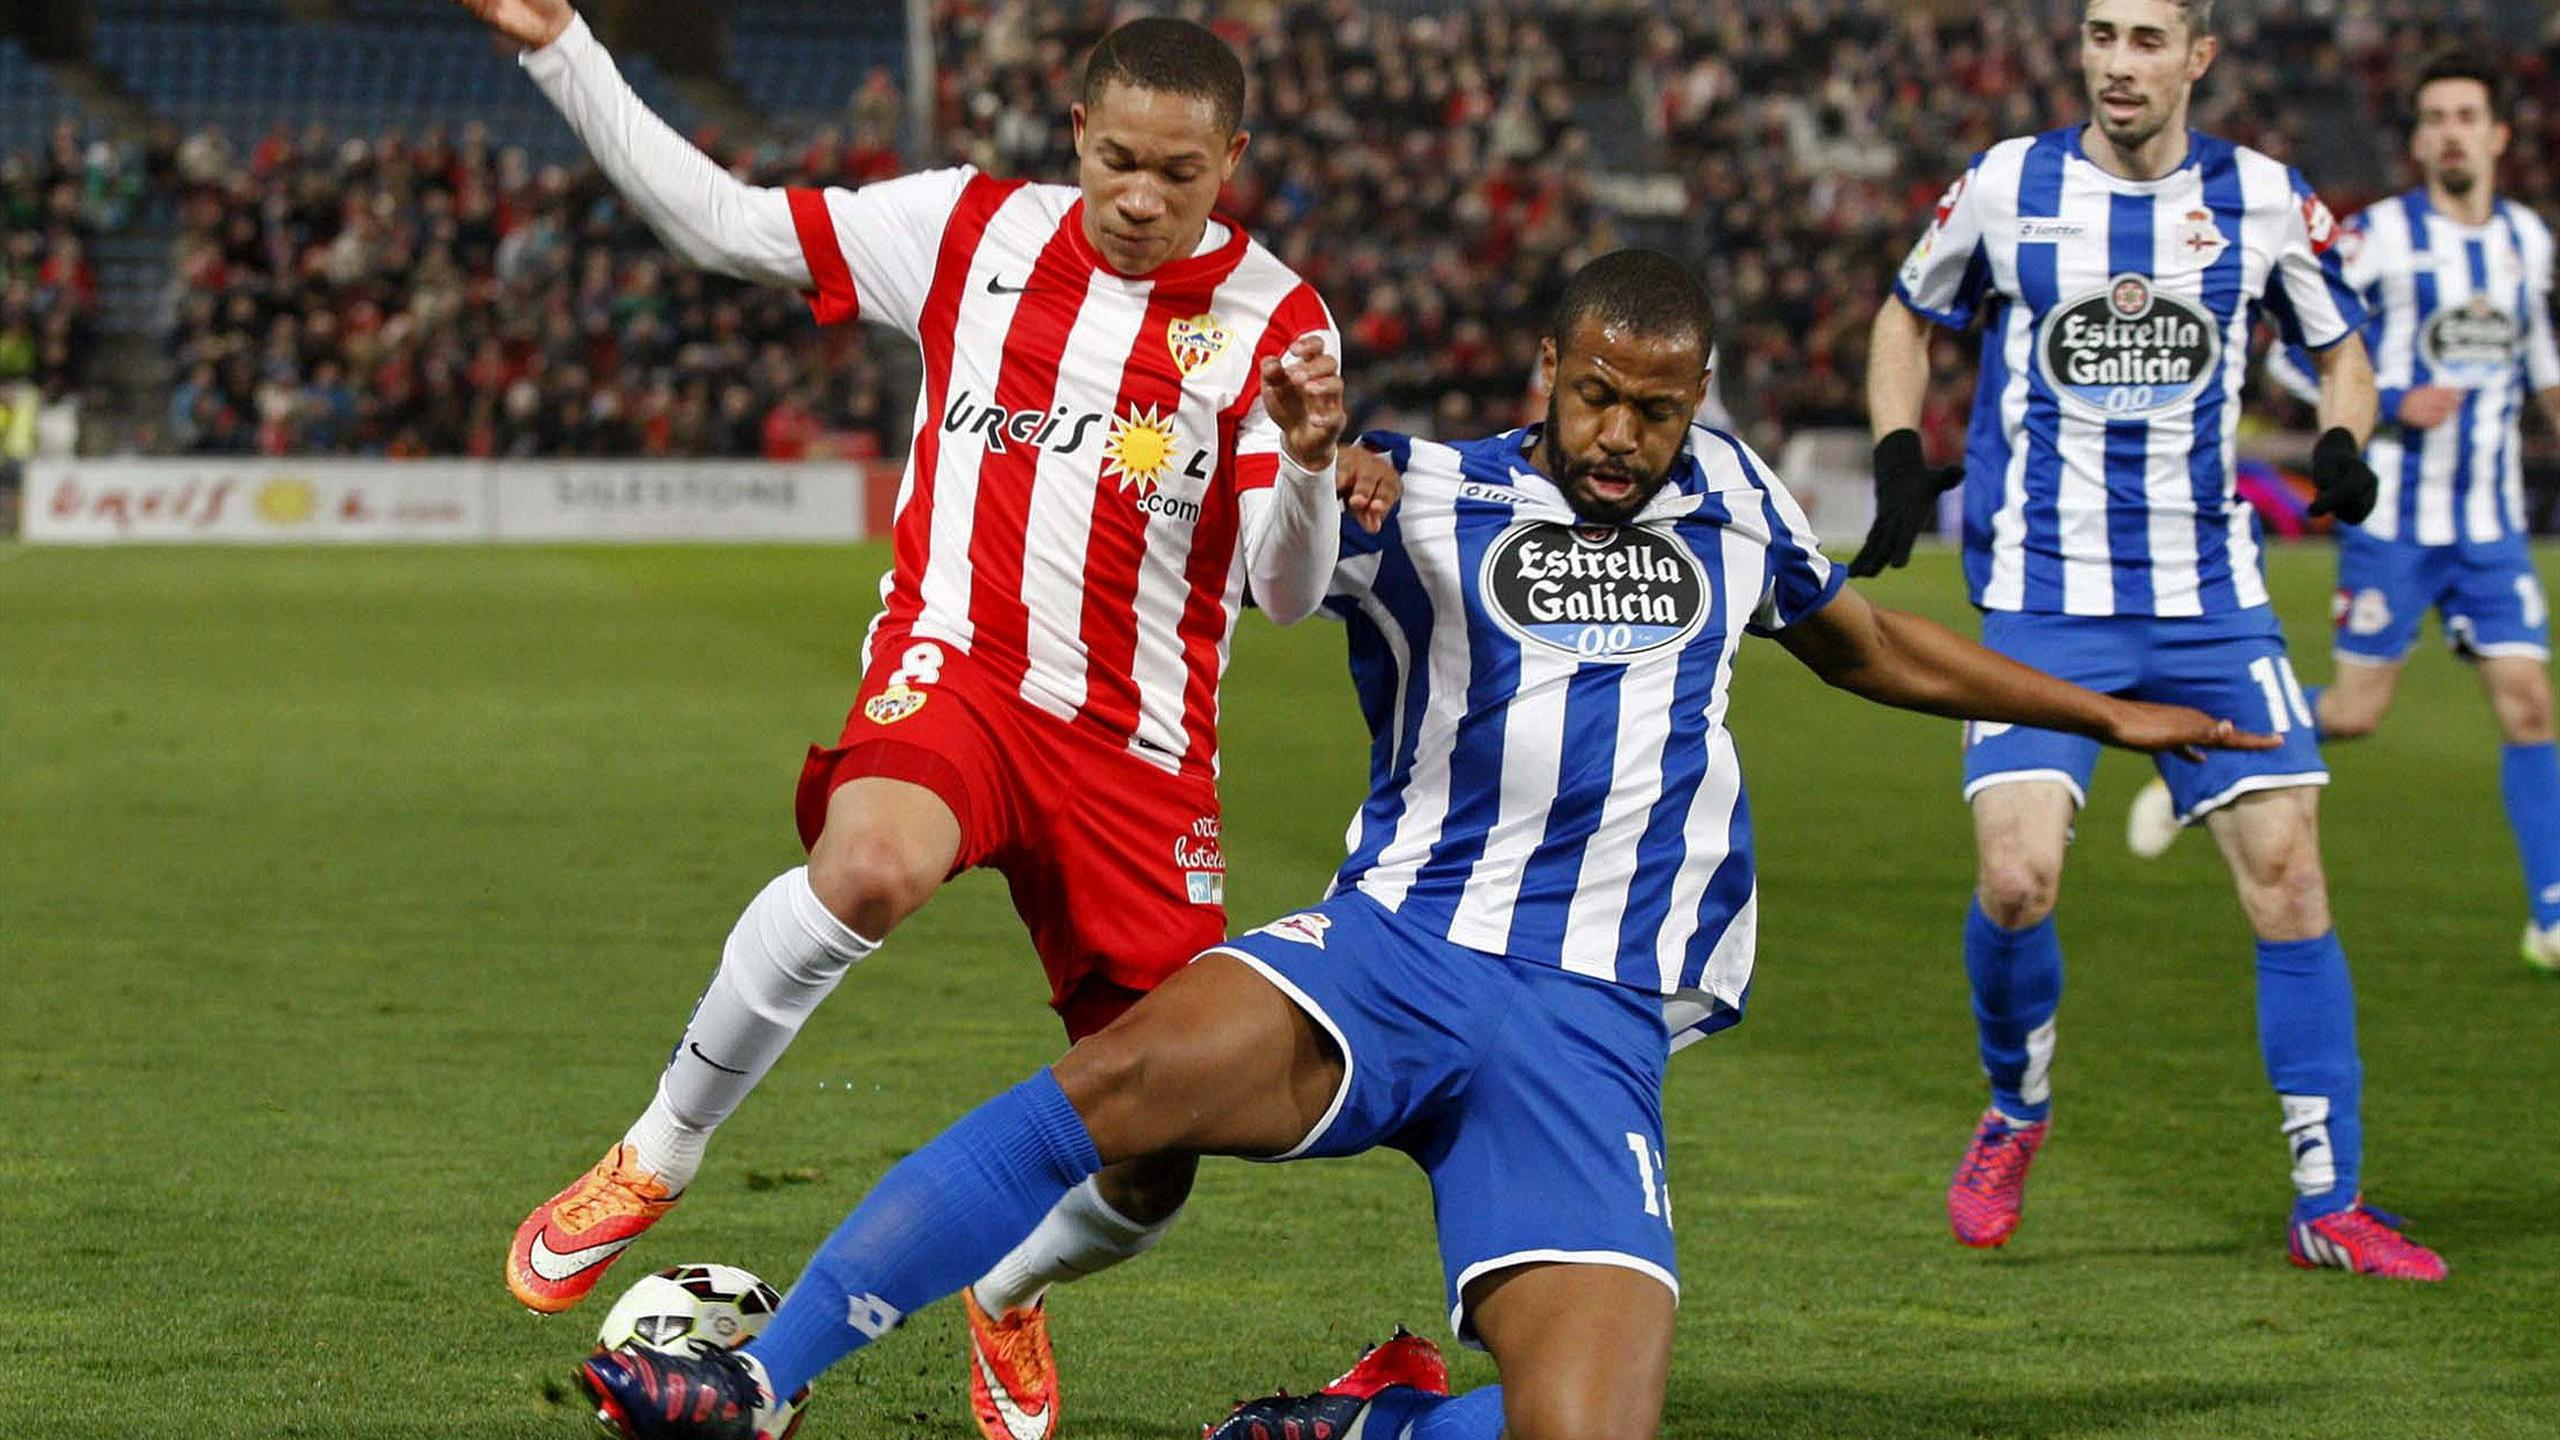 Video: Almeria vs Deportivo La Coruna